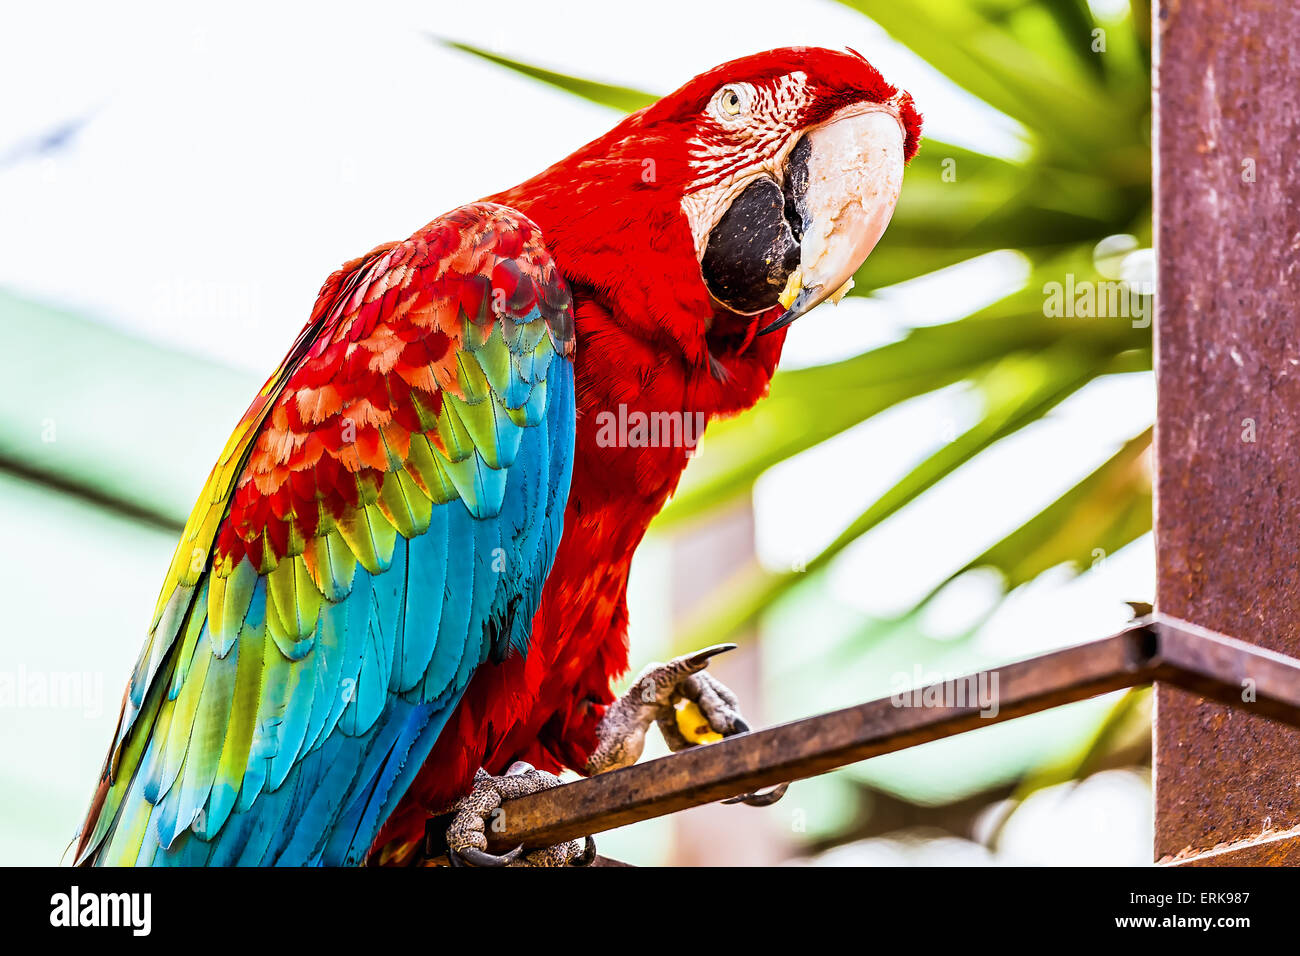 Red Macaw or Ara cockatoos parrot siting on metal perch - Stock Image